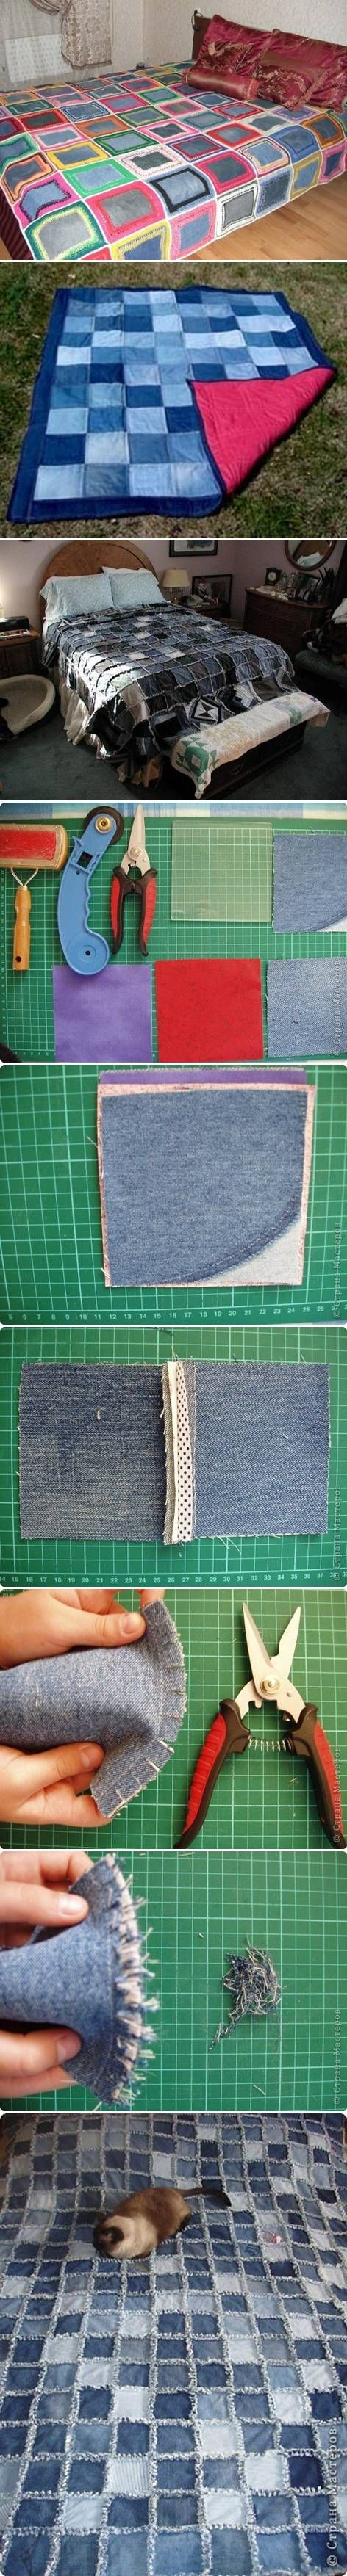 DIY Sew Denim Bedspread